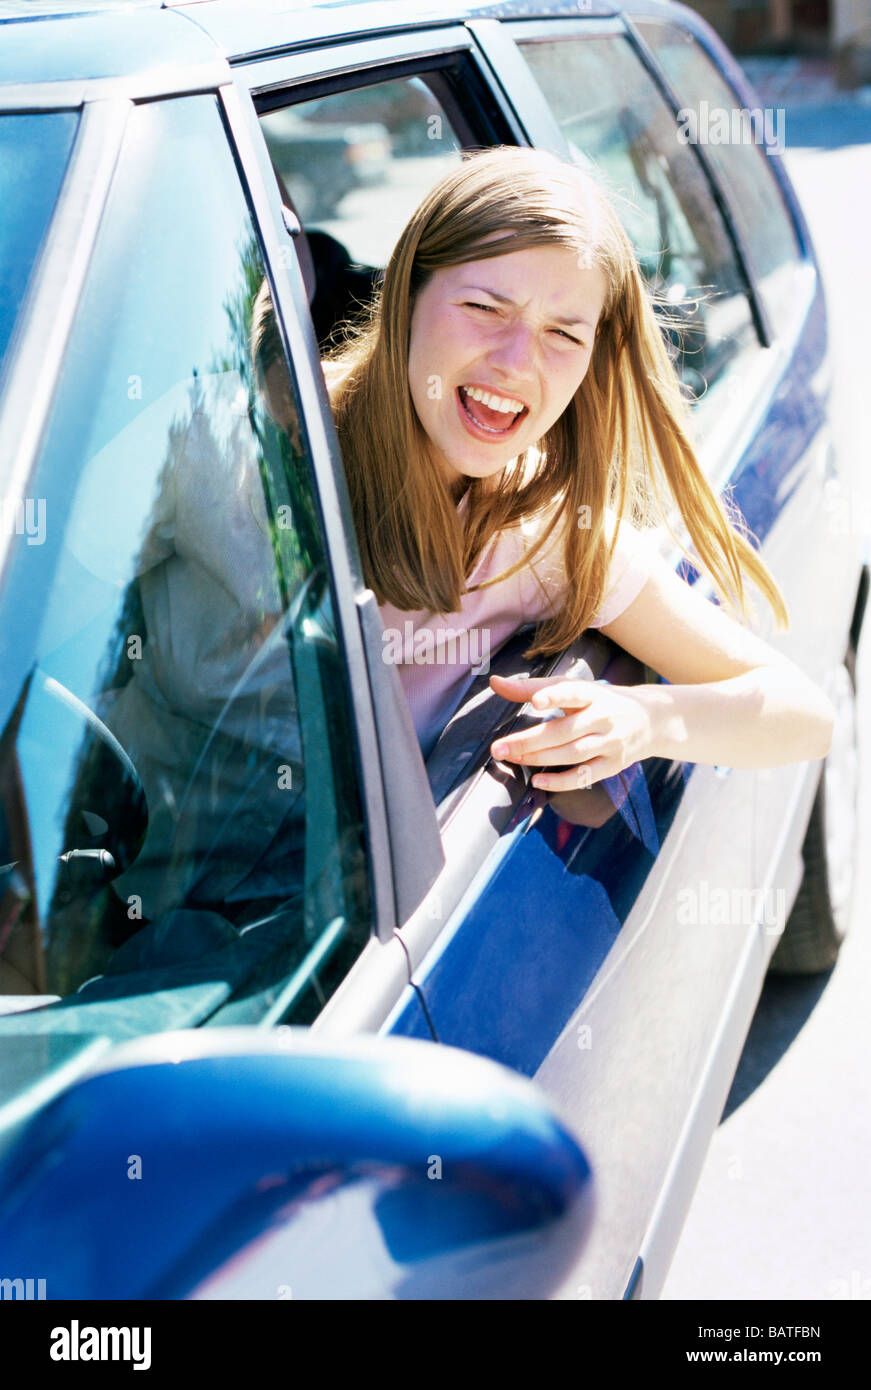 Road rage. Young woman shoutingout of a car window. Stock Photo